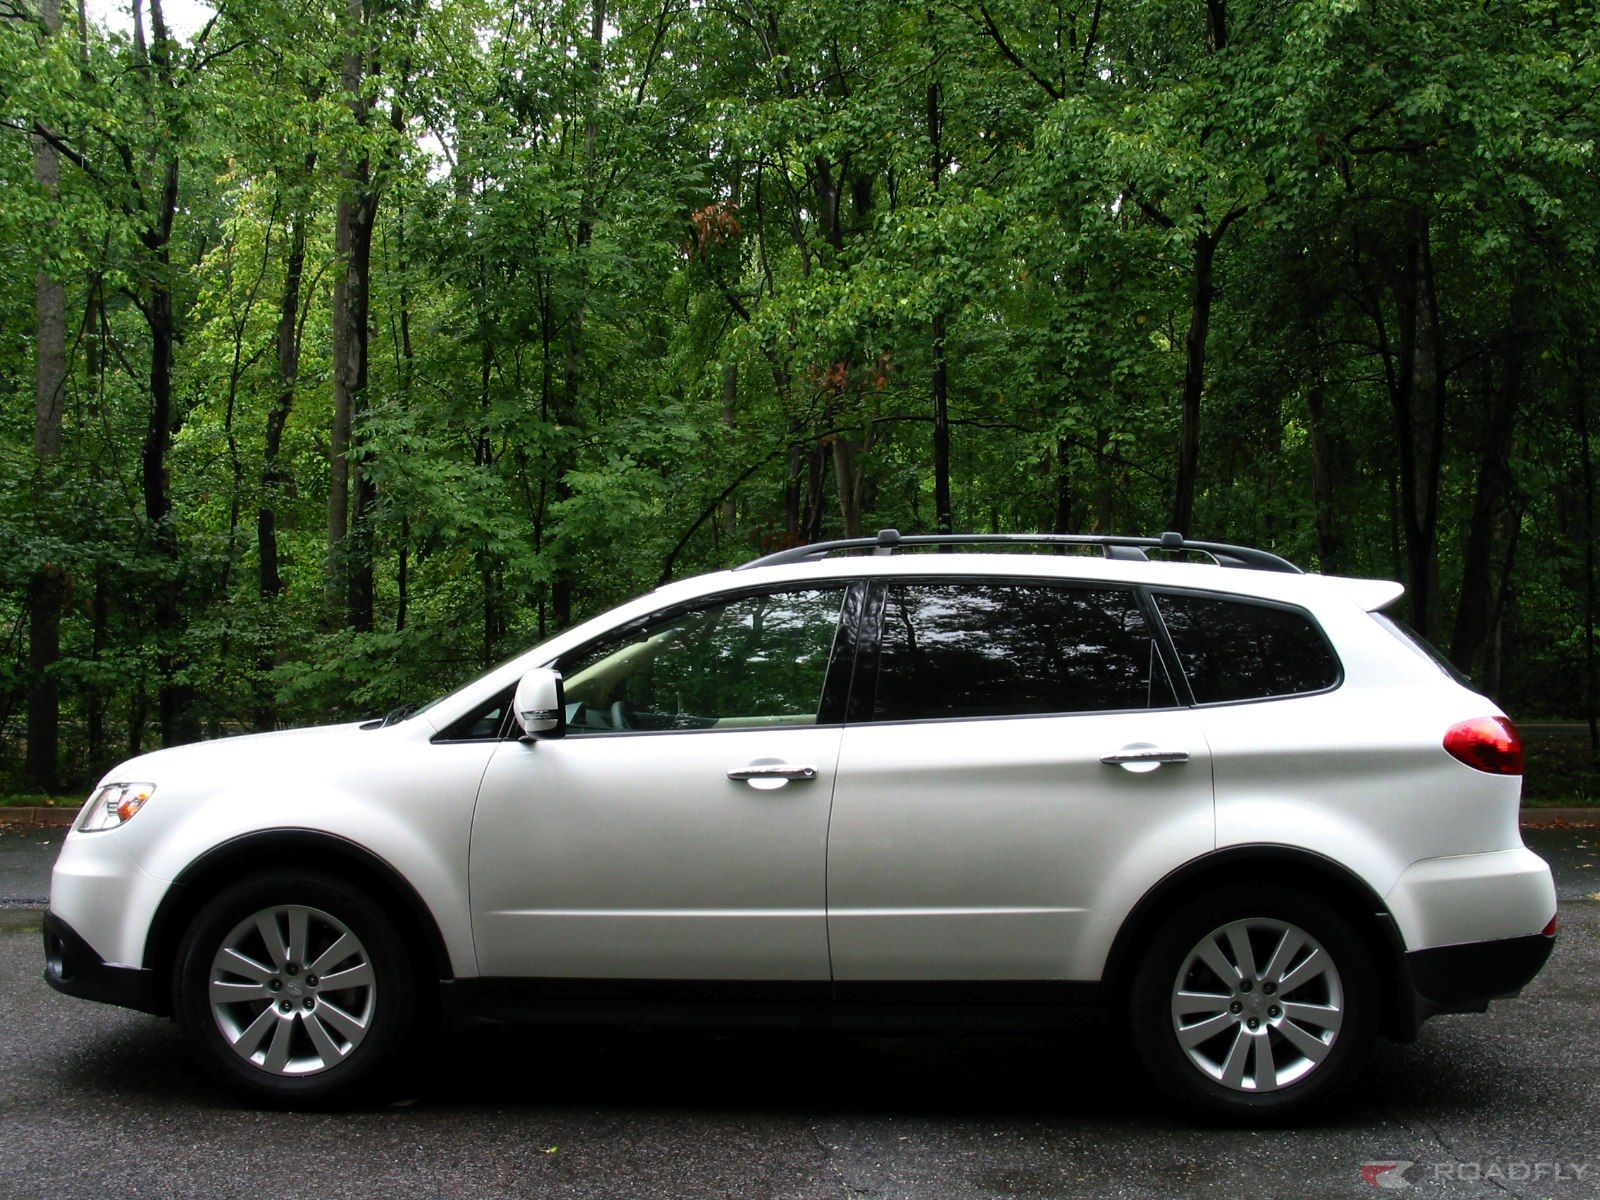 Subaru tribeca my dream family car cars pinterest subaru subaru tribeca my dream family car vanachro Image collections